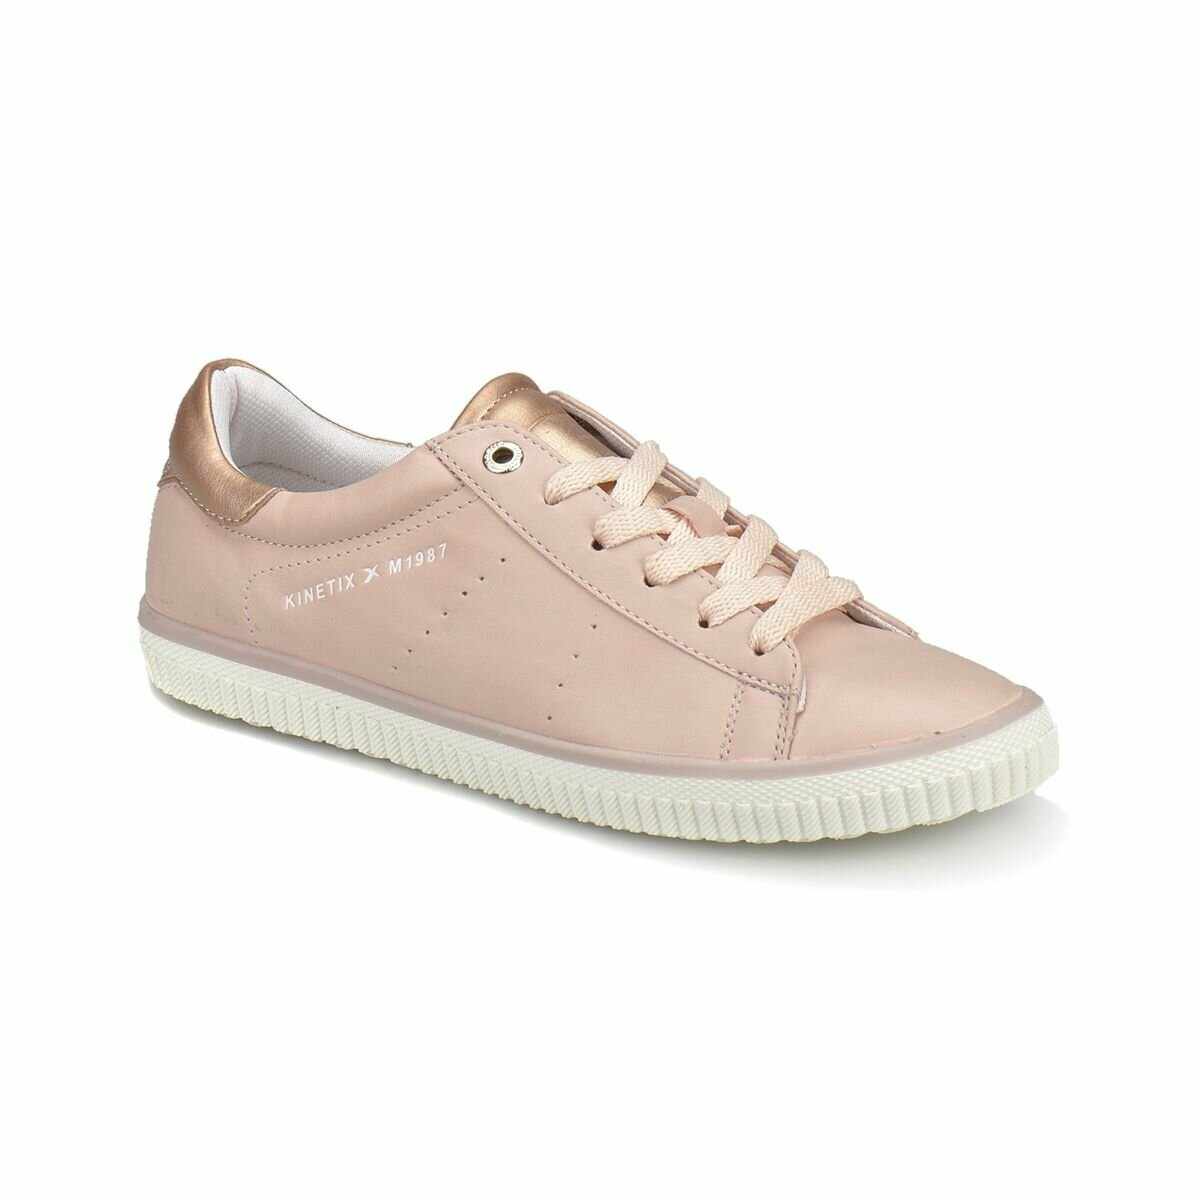 FLO WHITNEY Light Pink Women 'S Sneaker Shoes KINETIX